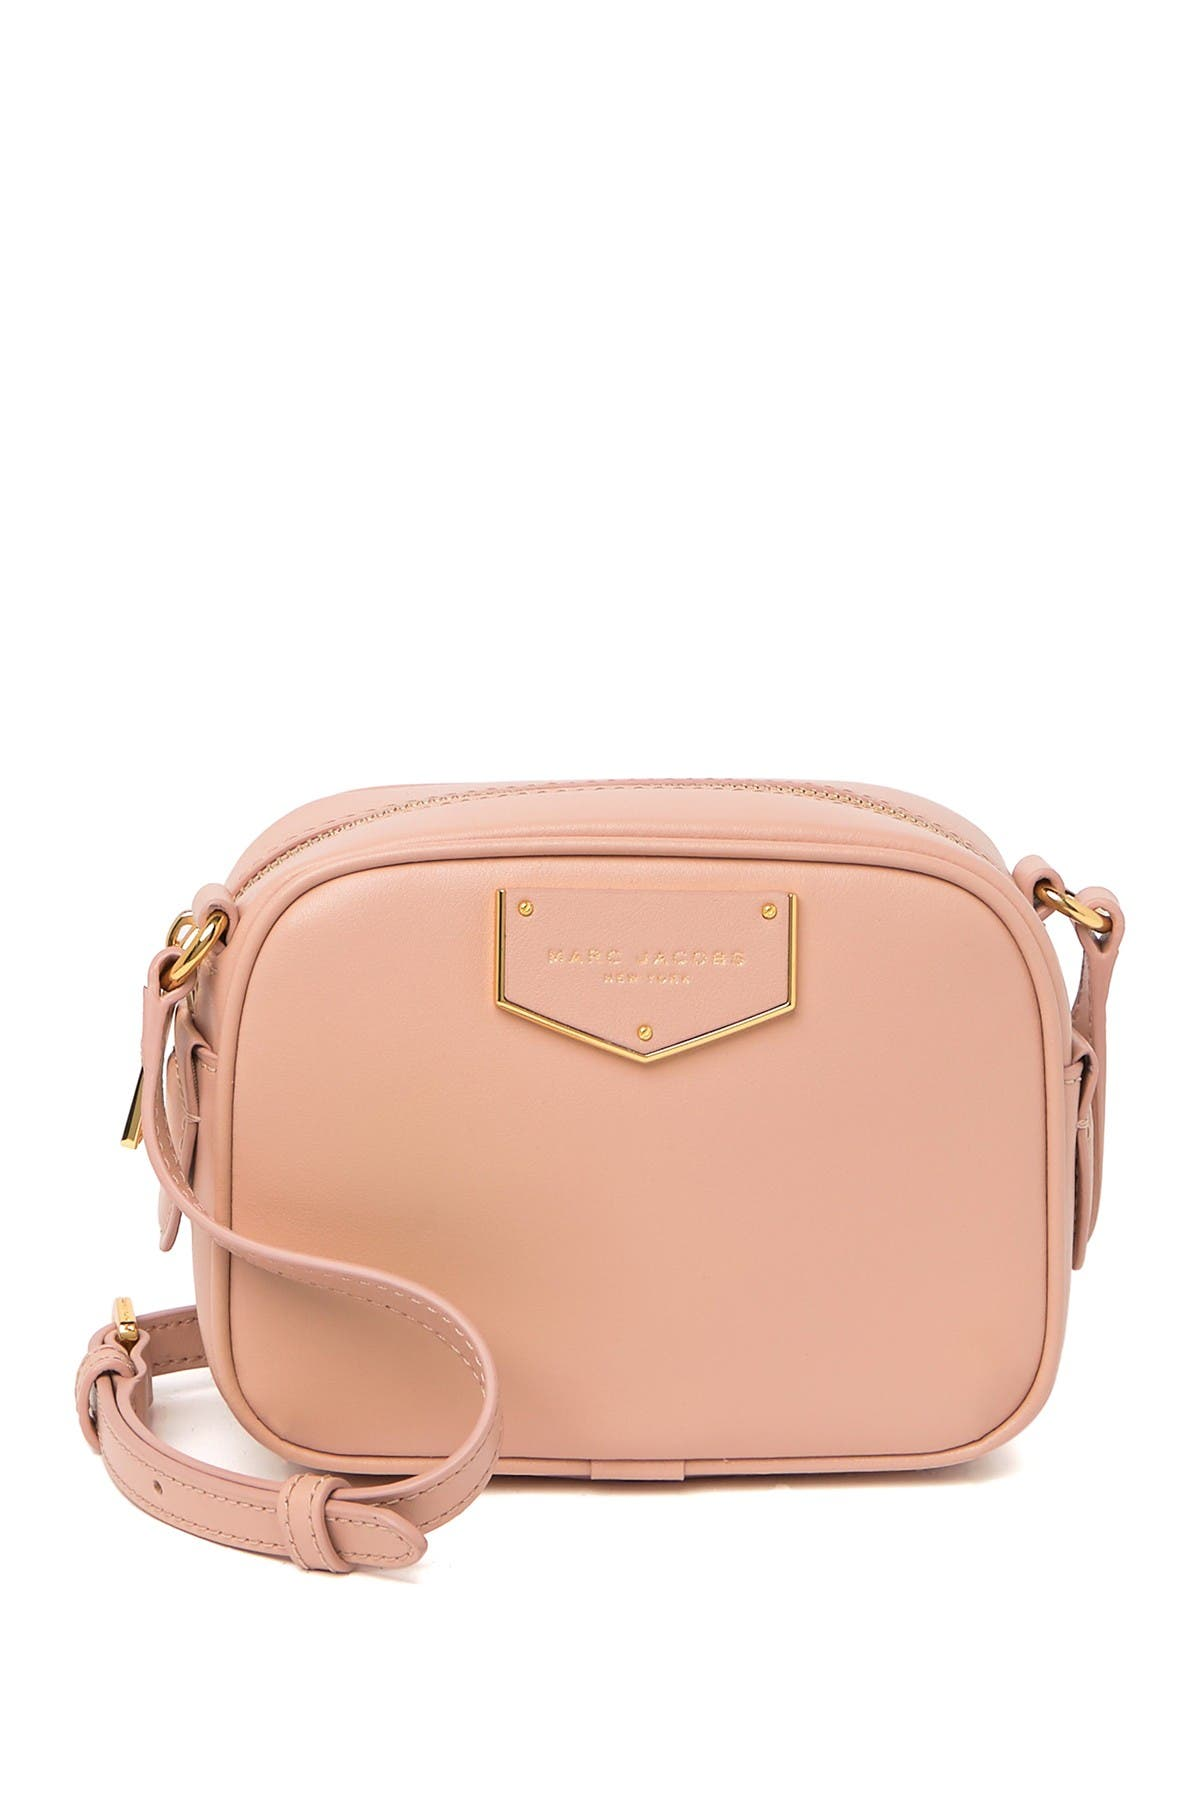 Image of Marc Jacobs Voyager Square Crossbody Bag